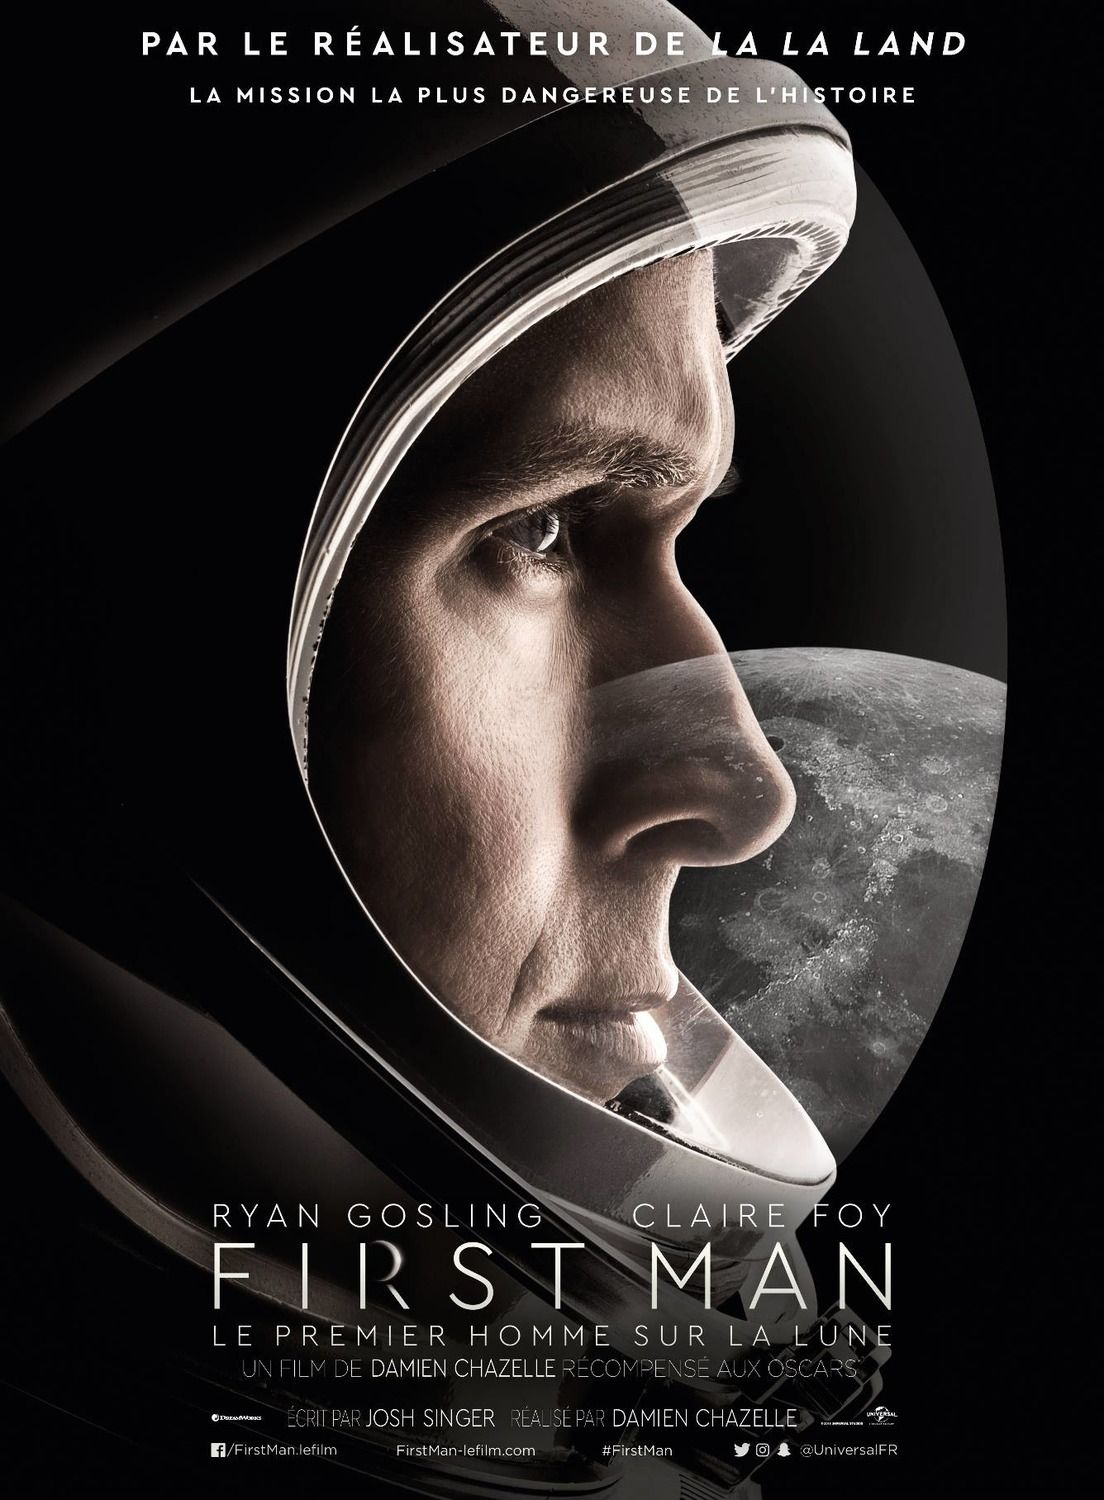 First Man 2018 Movie In 2019 Pinterest Film Movies And